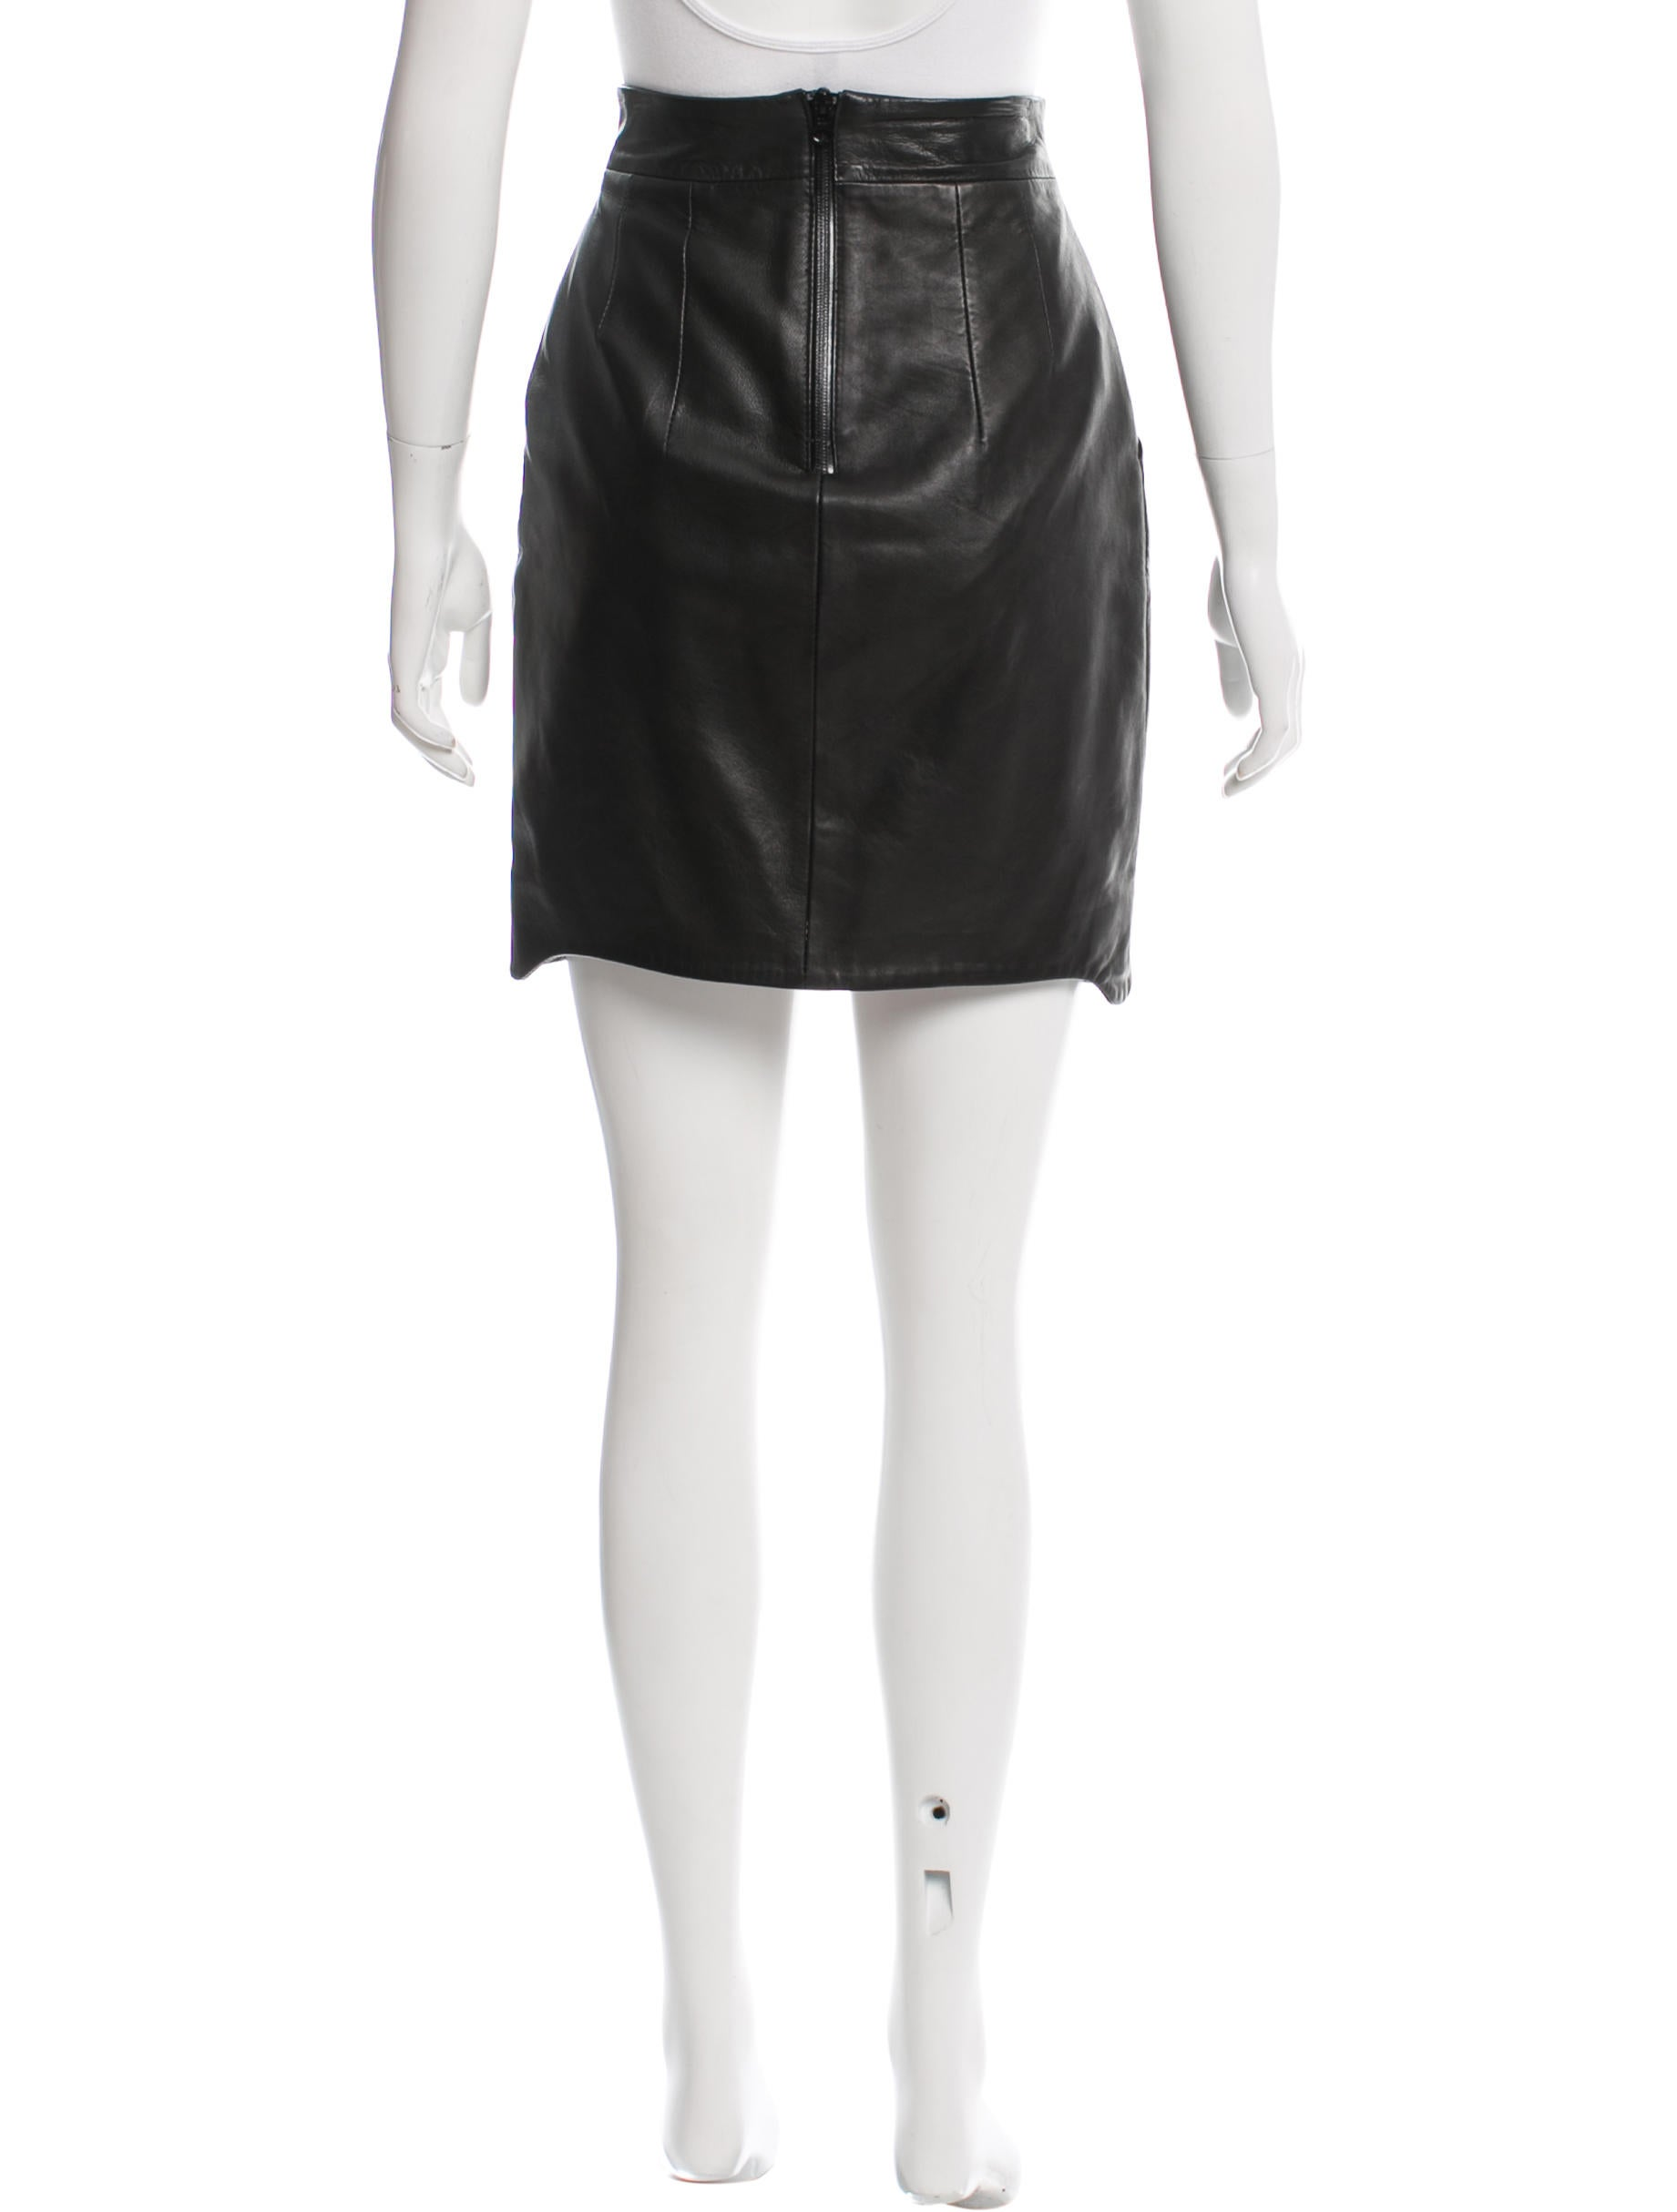 acne leather pencil skirt clothing acn28632 the realreal